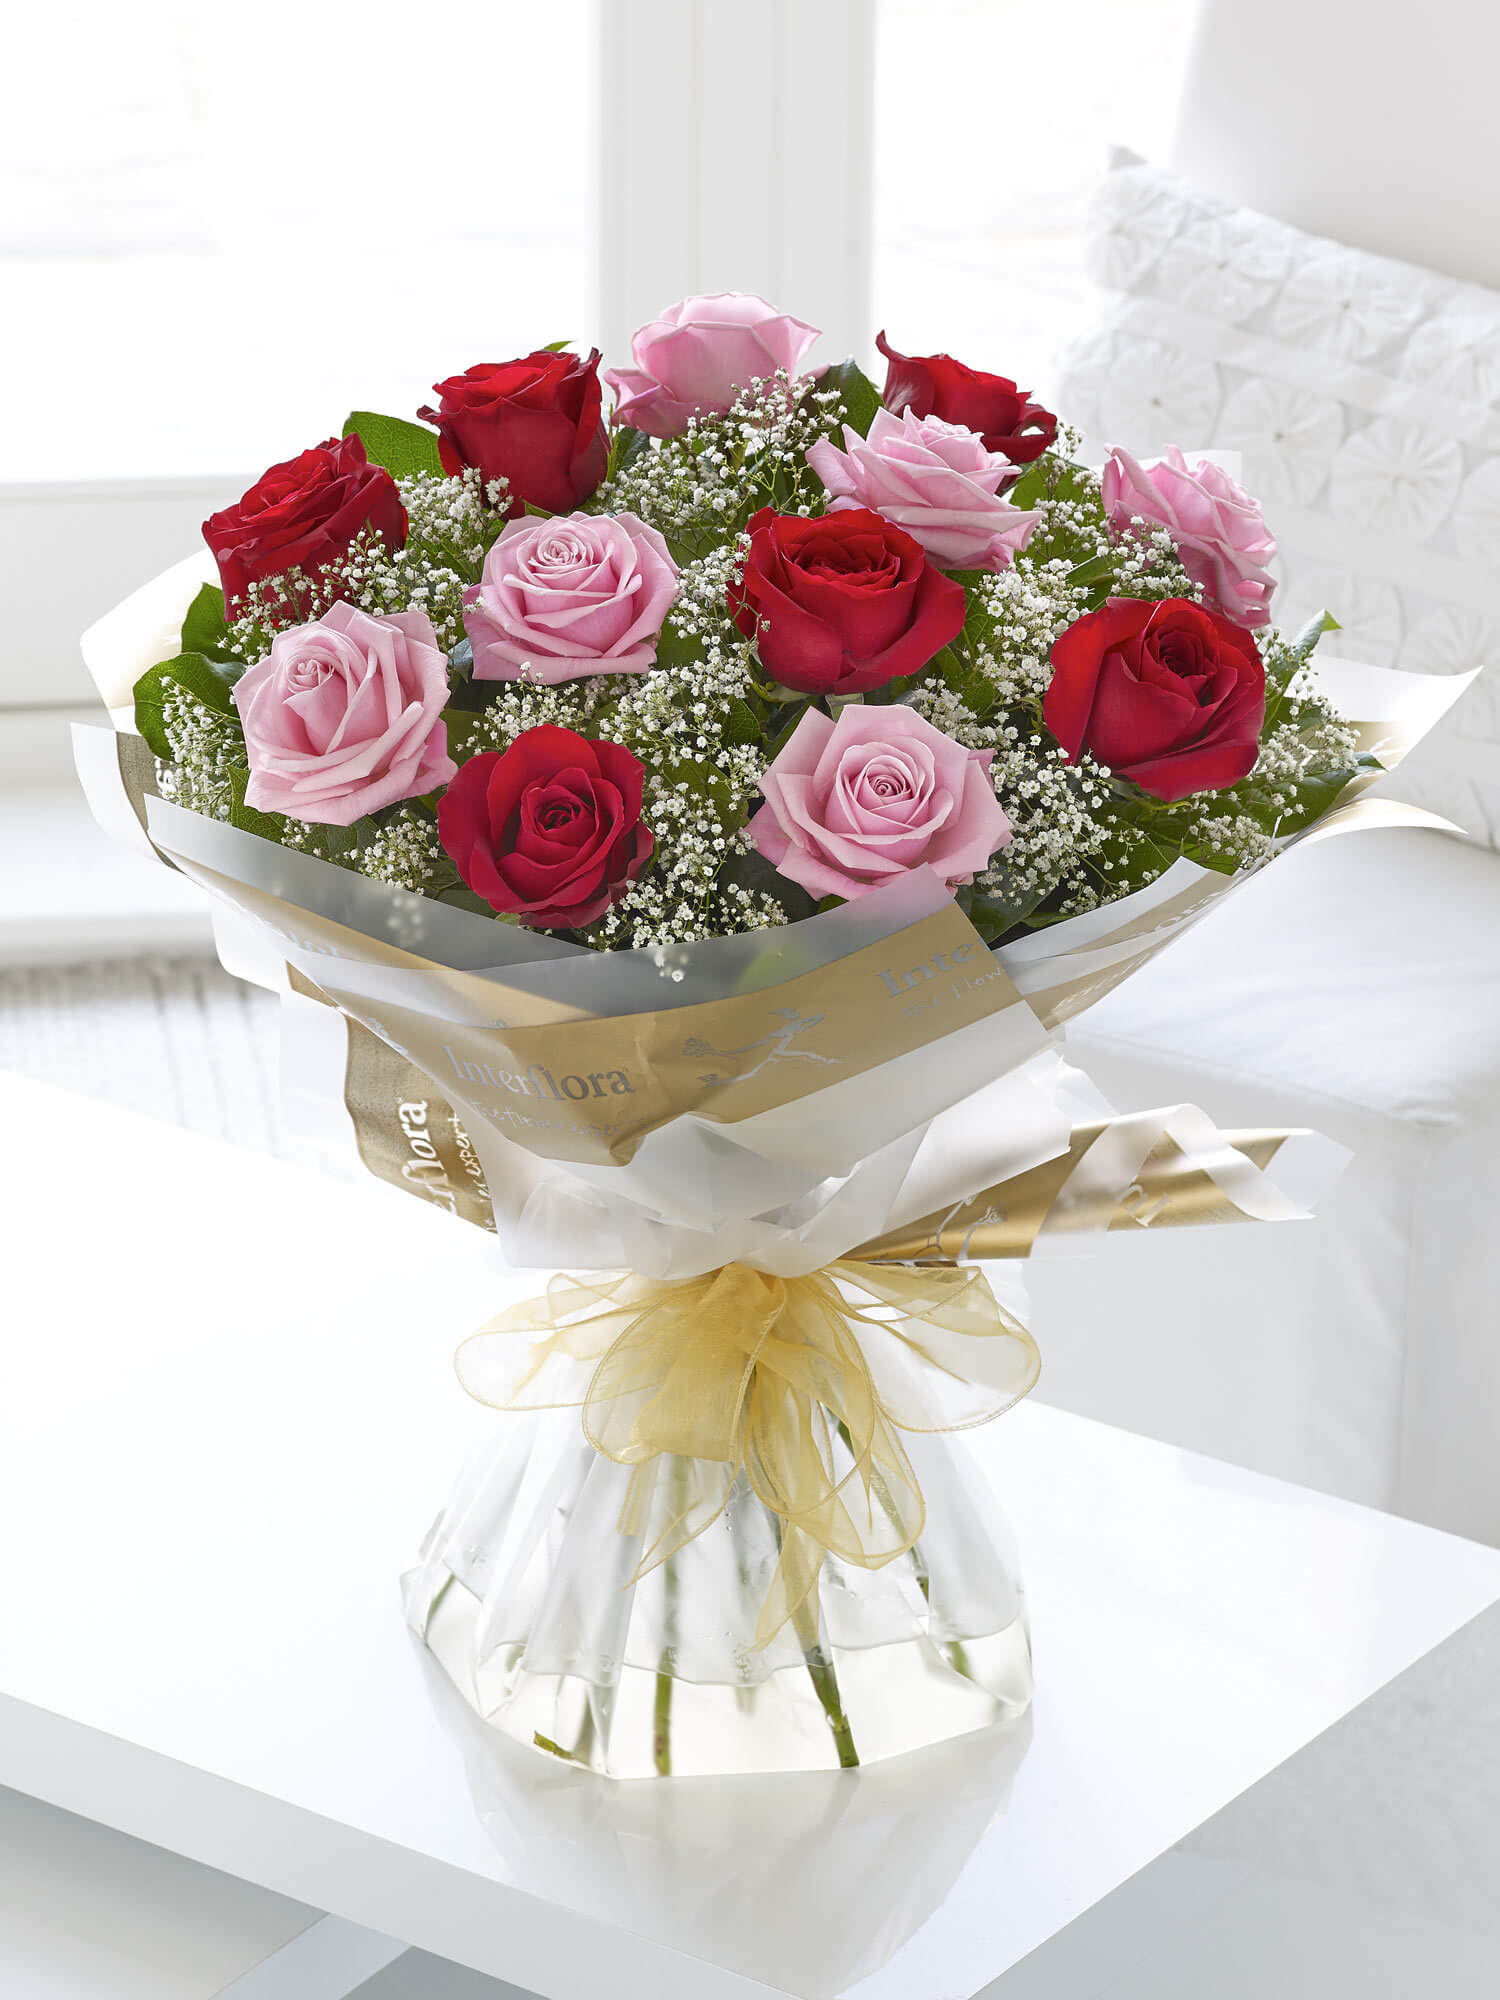 Heavenly Red and Pink Rose Hand-tied with Vase